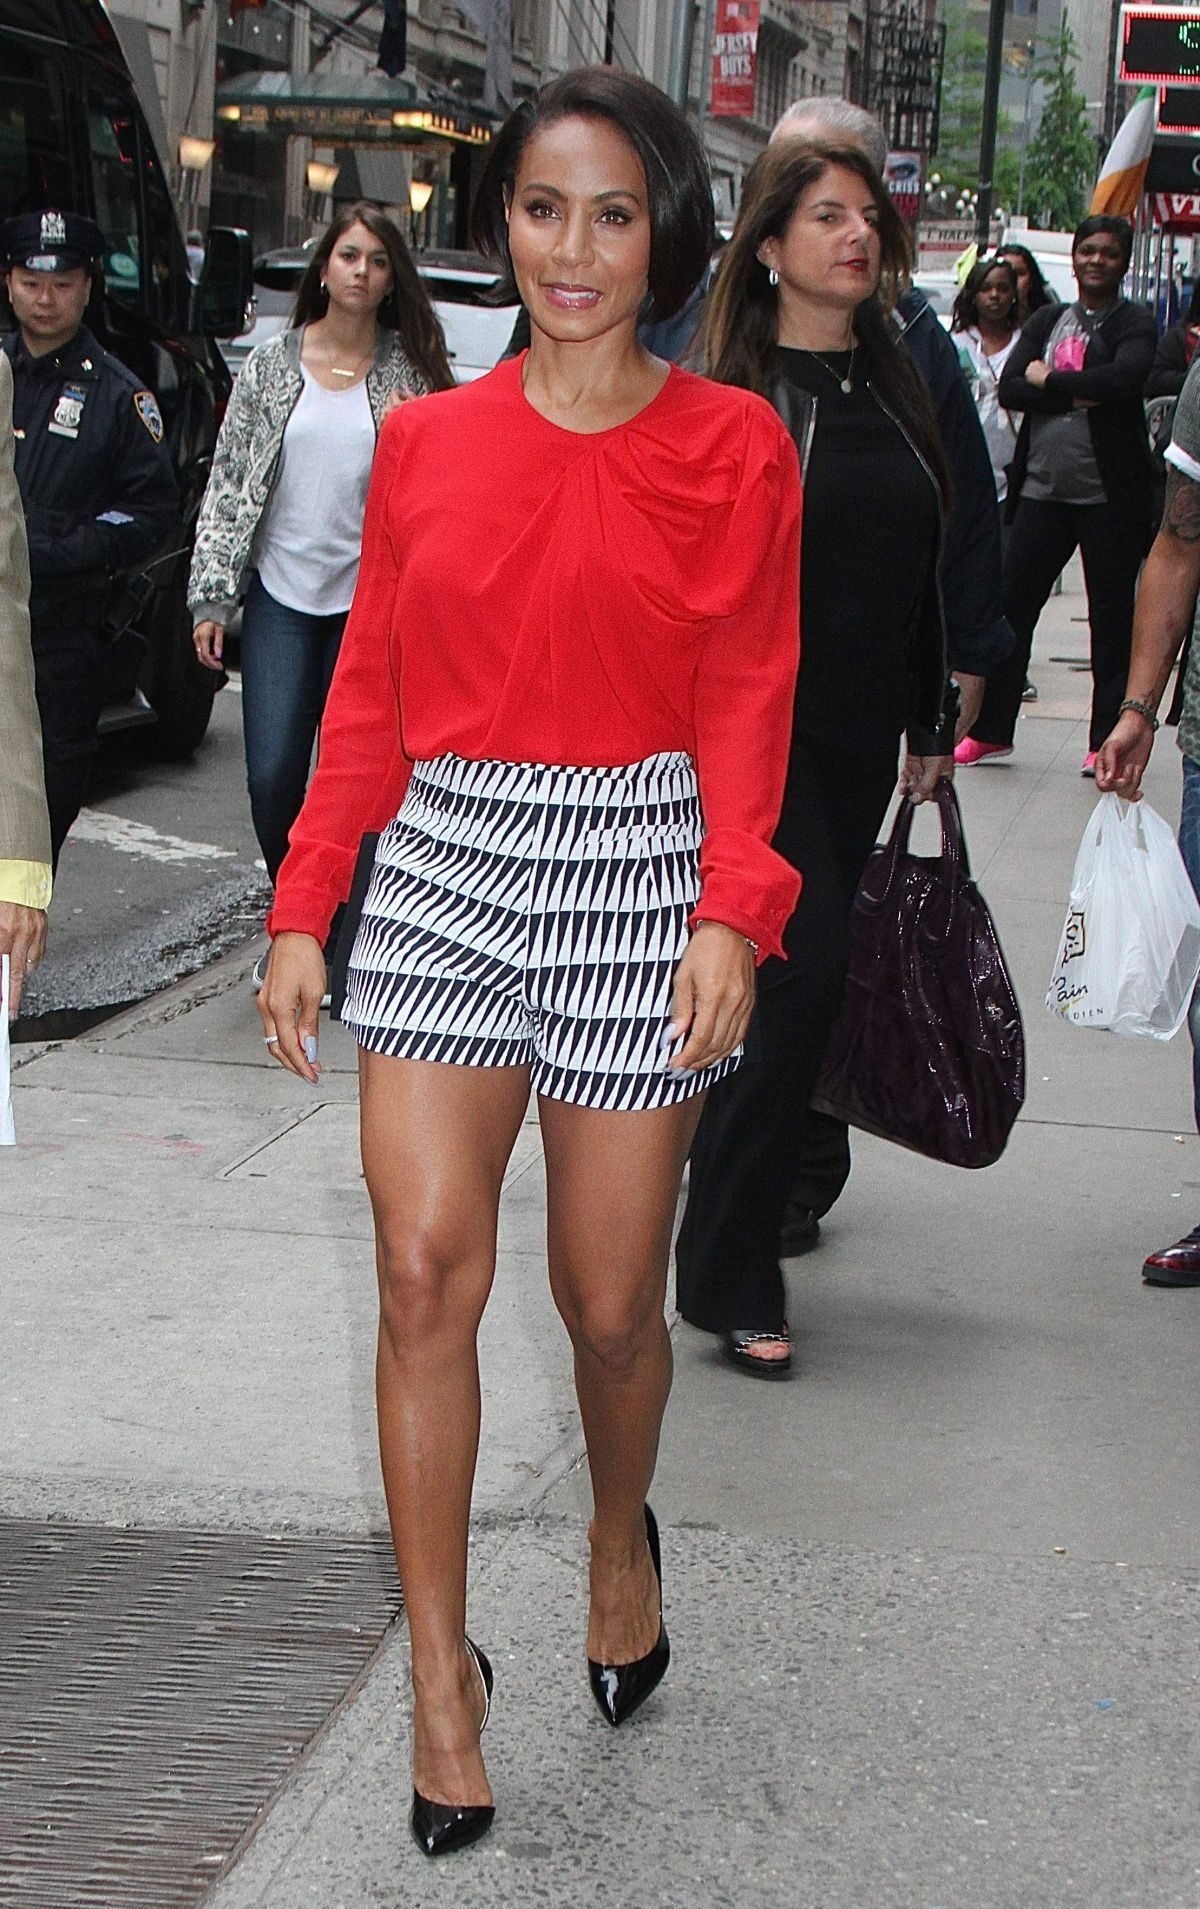 Jada Pinkett Smith At Good Morning America In New York 06 04 2015